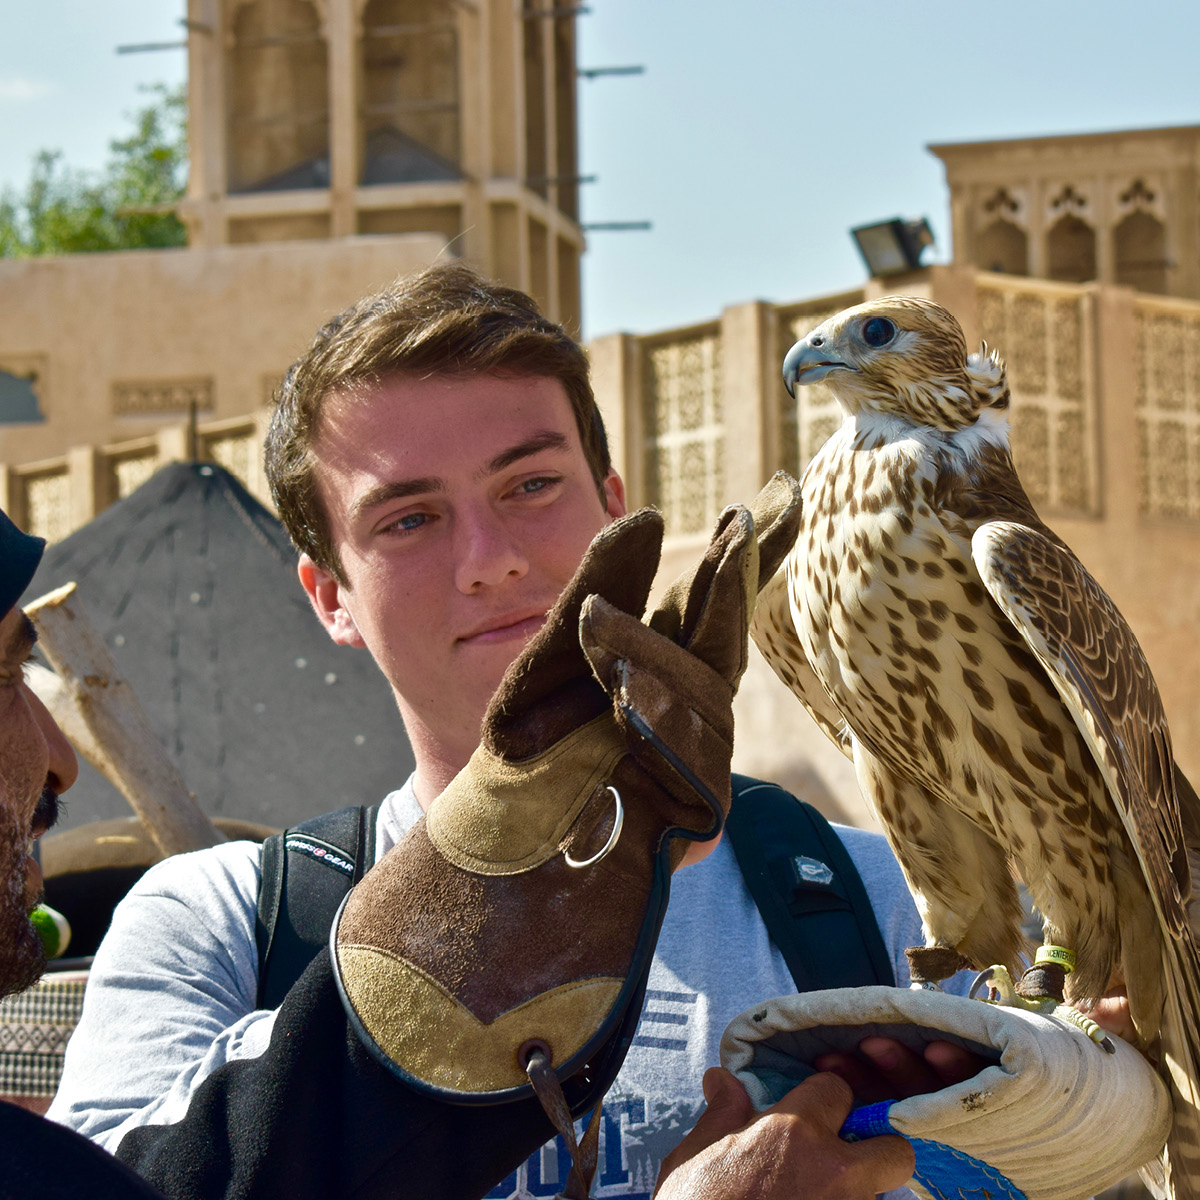 Student holding a bird of prey.